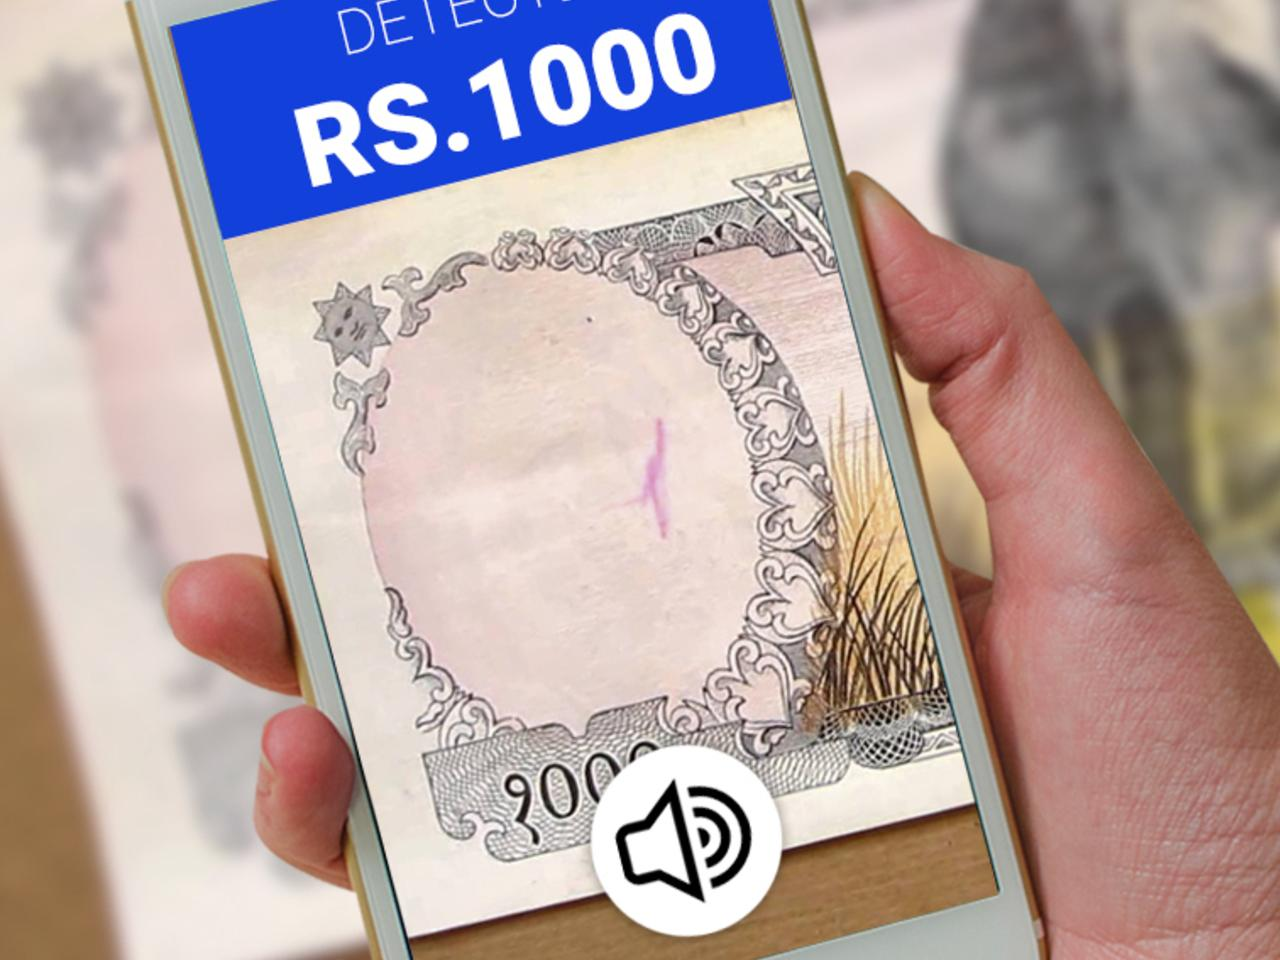 Cash Recognition for Visually Impaired